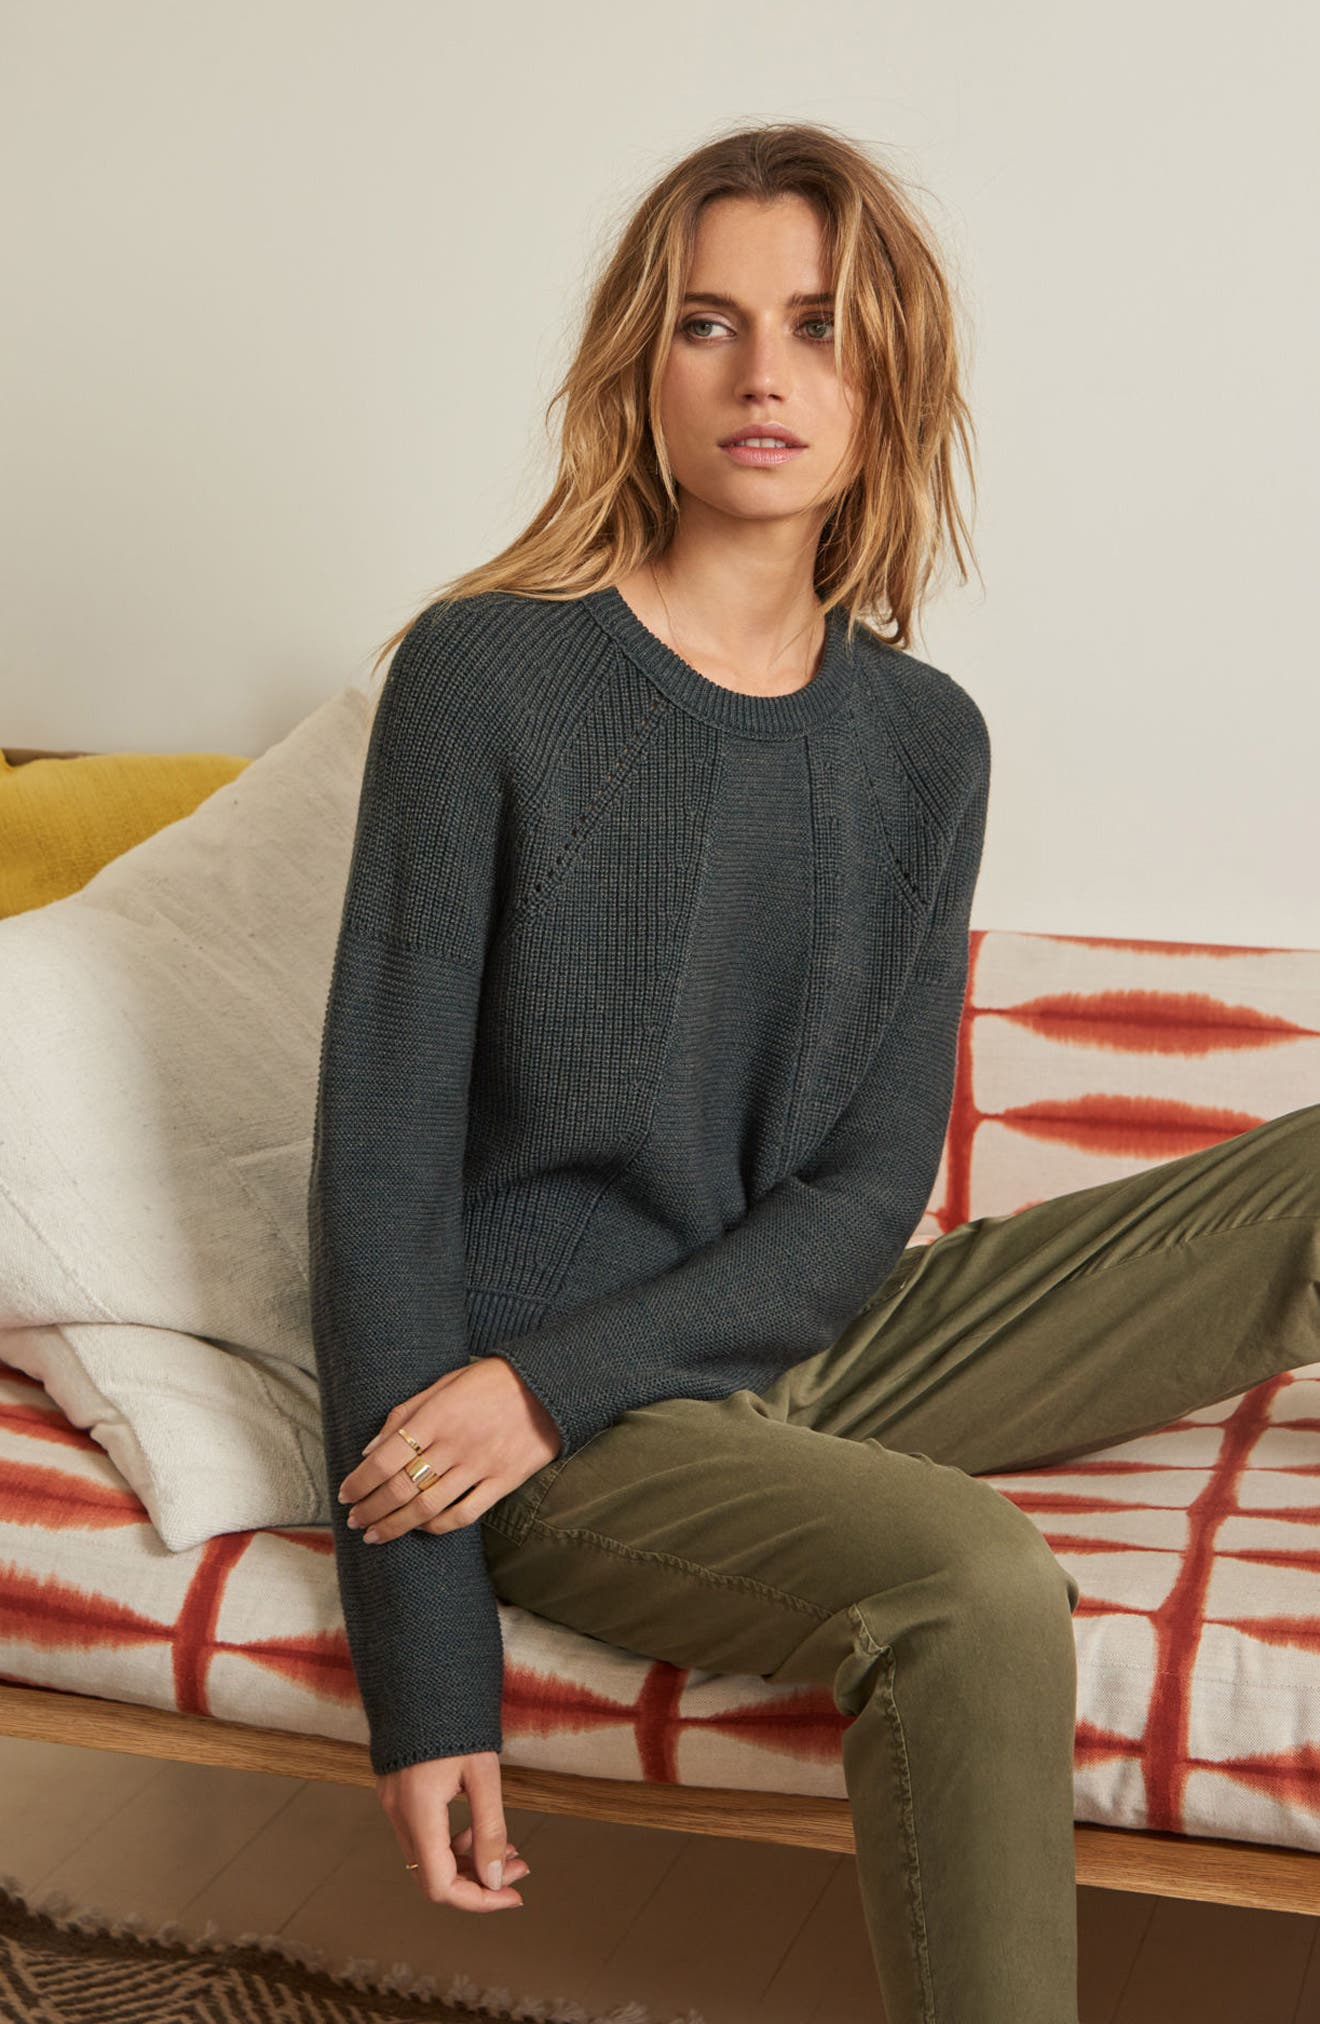 Engineered Stitch Sweater,                             Alternate thumbnail 2, color,                             Military